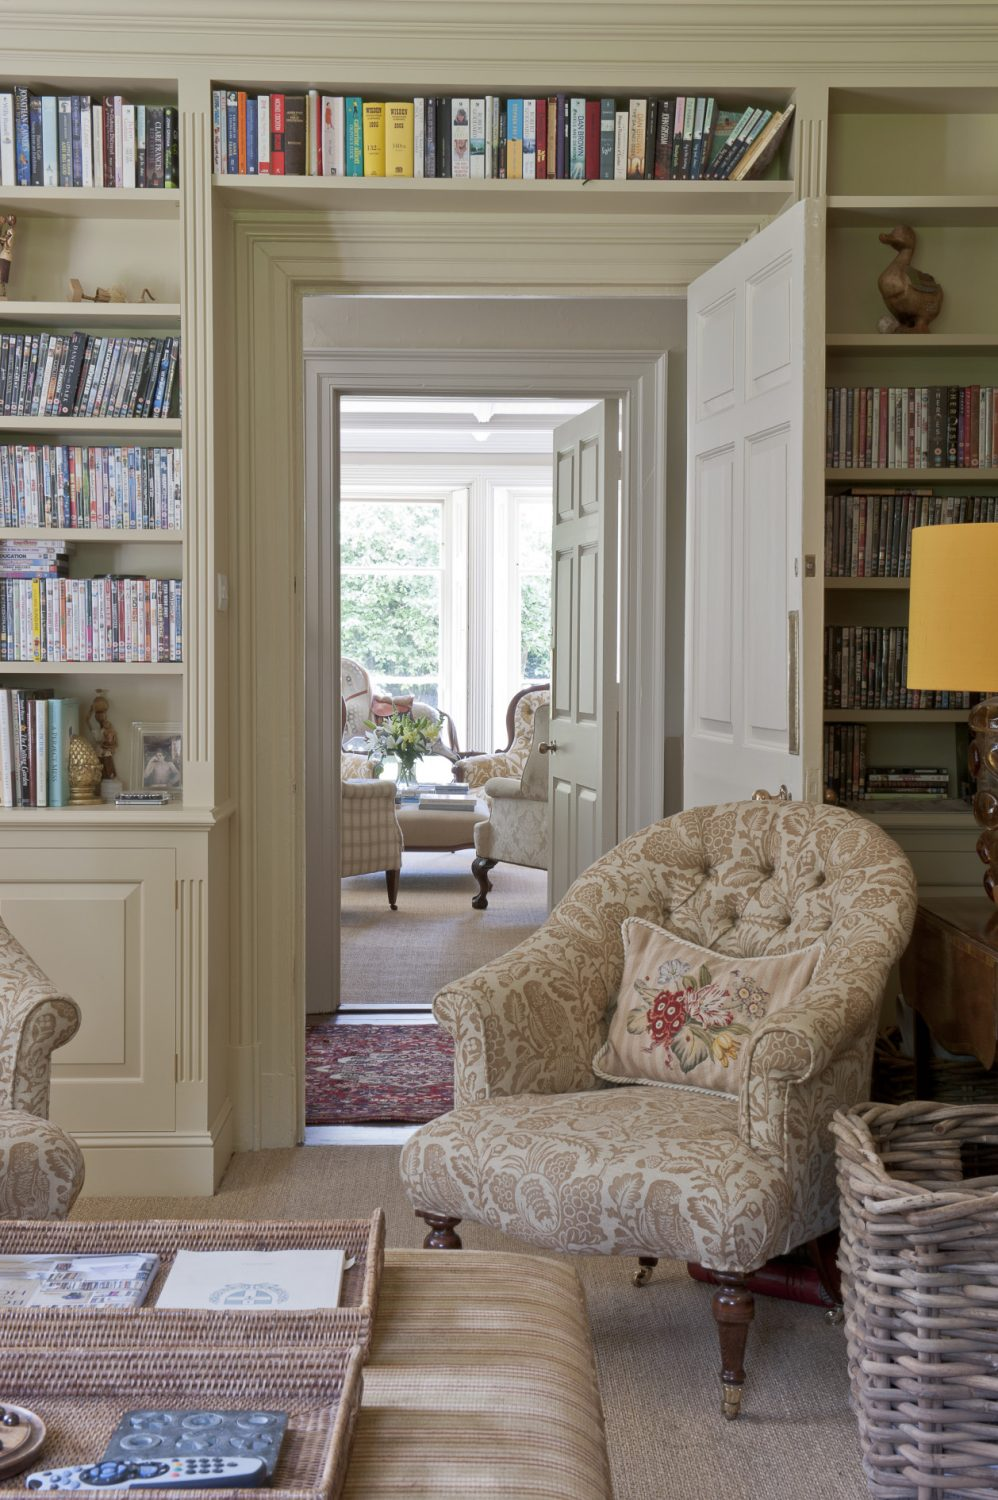 Belinda has lined two of the walls with bookcases made by one of her local joiners and hand-painted them in Farrow & Ball 'Cord'